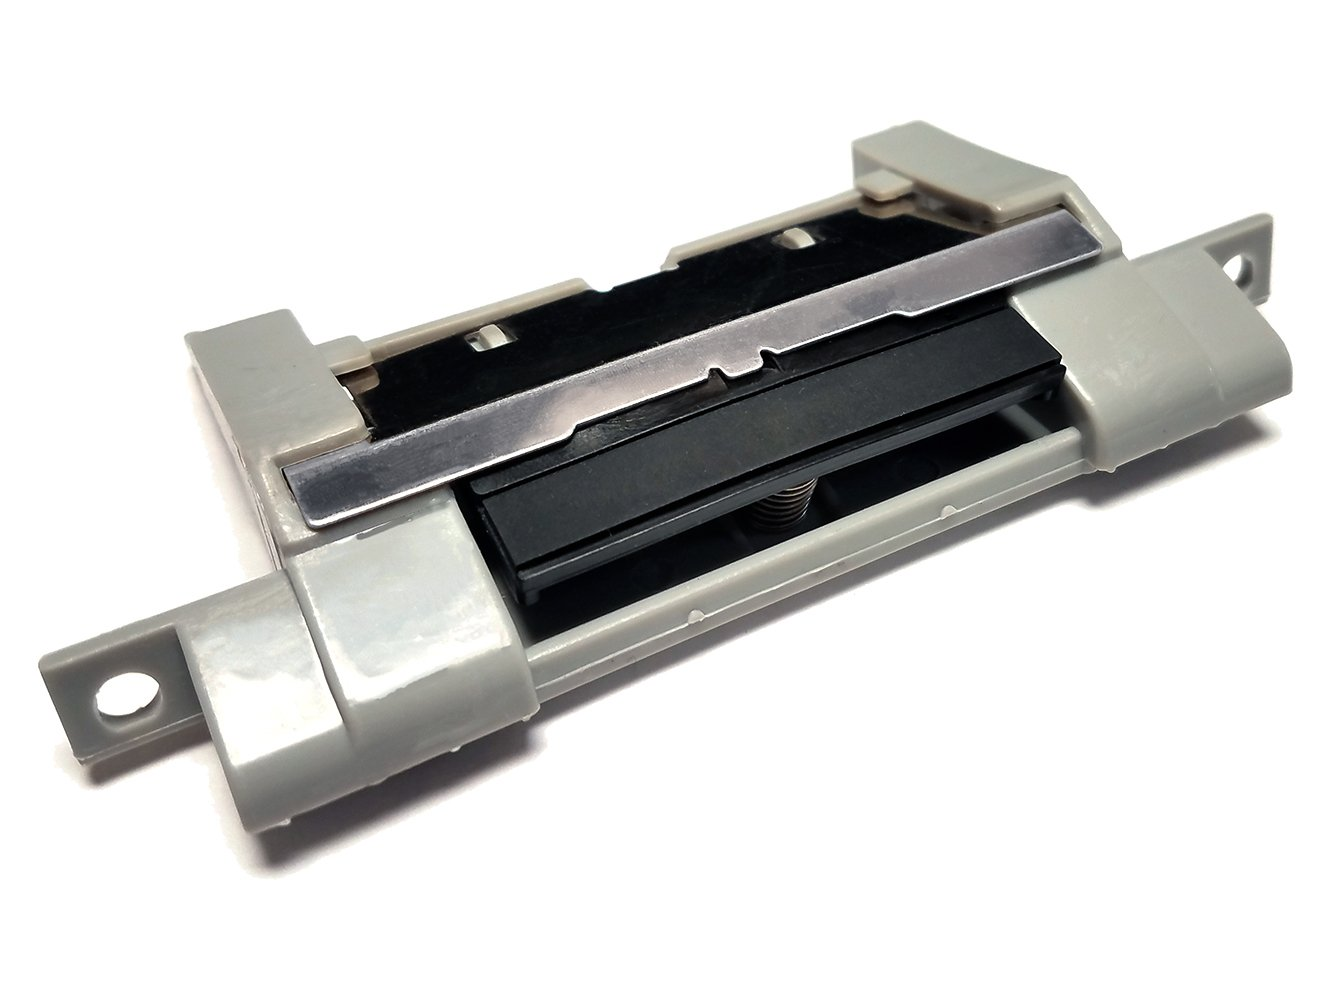 Altru Print Q7543-67909-MK-DLX-AP (Q7543A. RM1-2522) Deluxe Maintenance Kit for HP Laserjet 5200 (110V) Includes RM1-2522 Fuser, Transfer Roller & Tray 1-3 Rollers by Altru Print (Image #7)